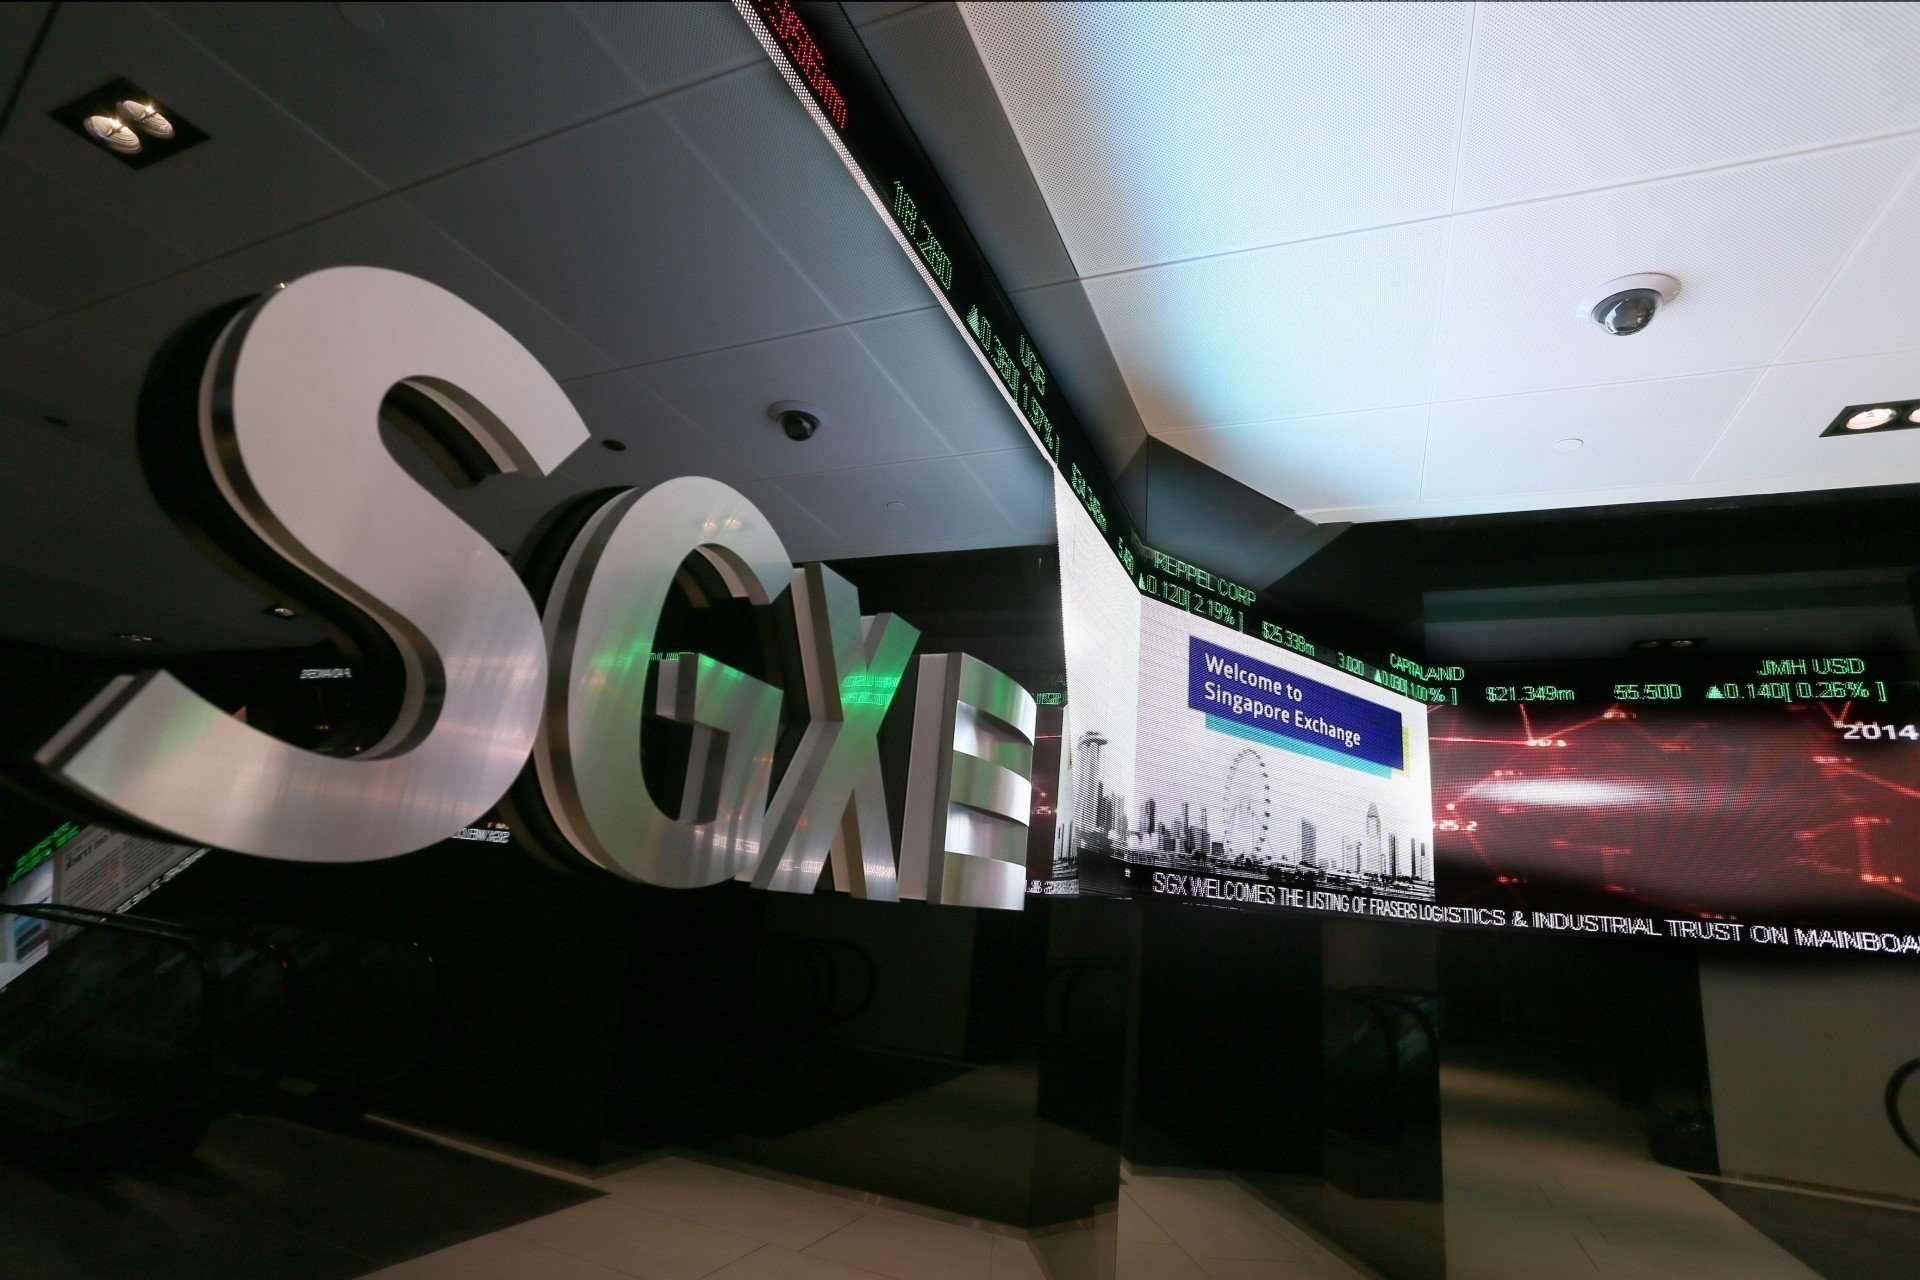 The move comes five months after SGX, HSBC Singapore, and Temasek teamed up for the issuance of Asia's first public syndicated digital bond last August